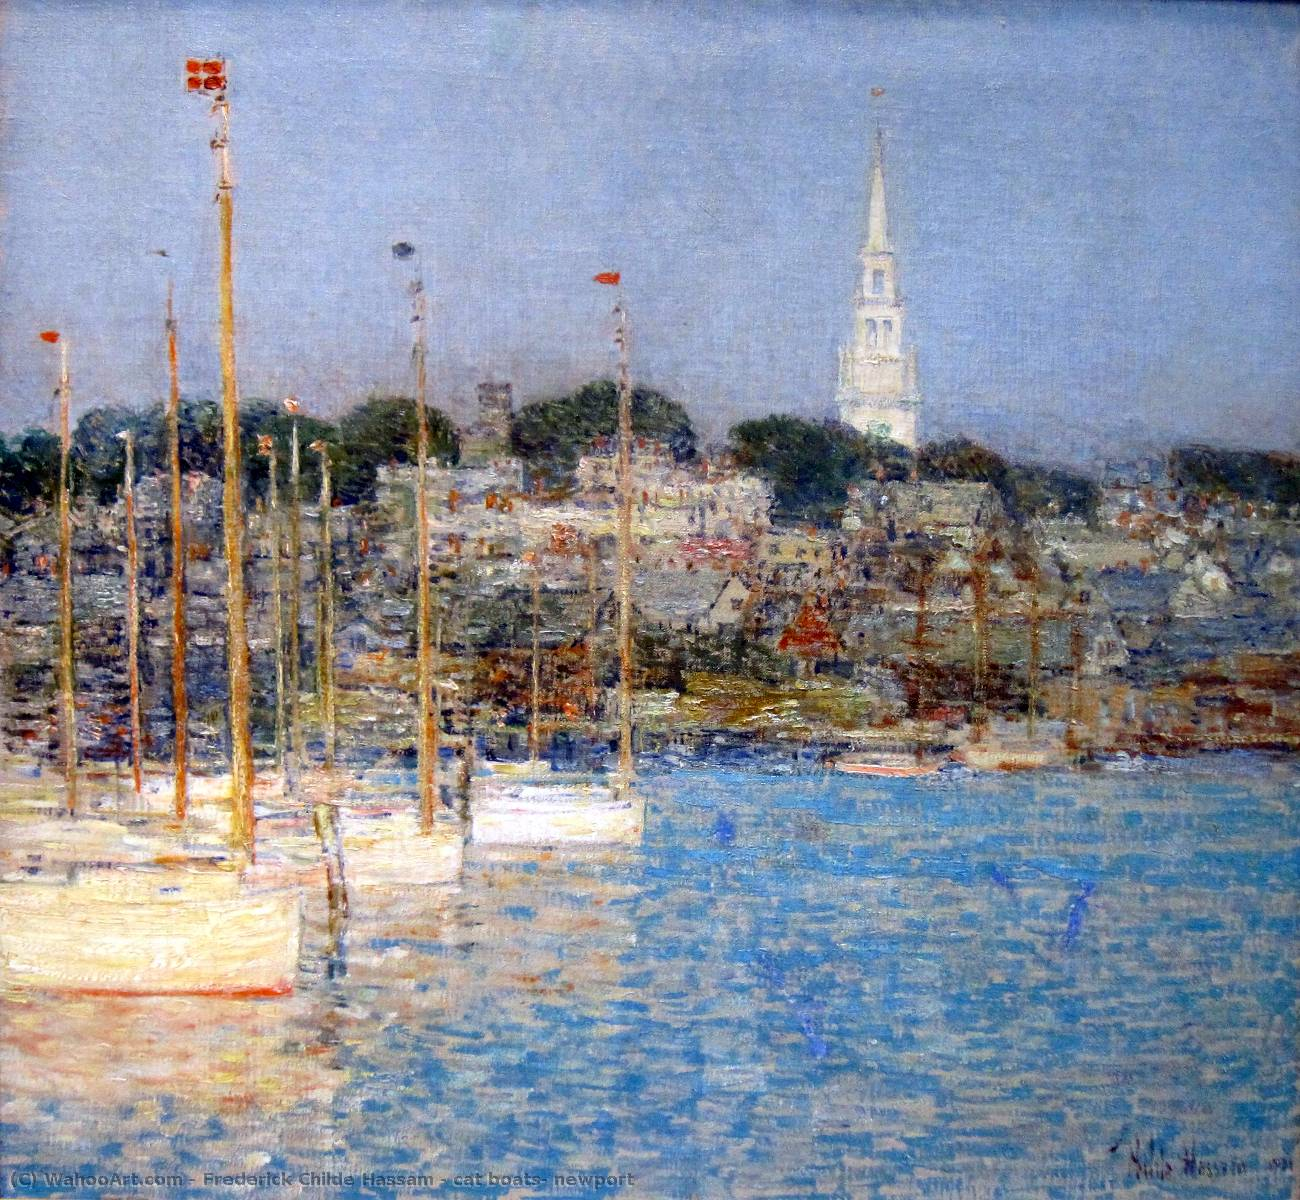 famous painting cat boats, newport of Frederick Childe Hassam